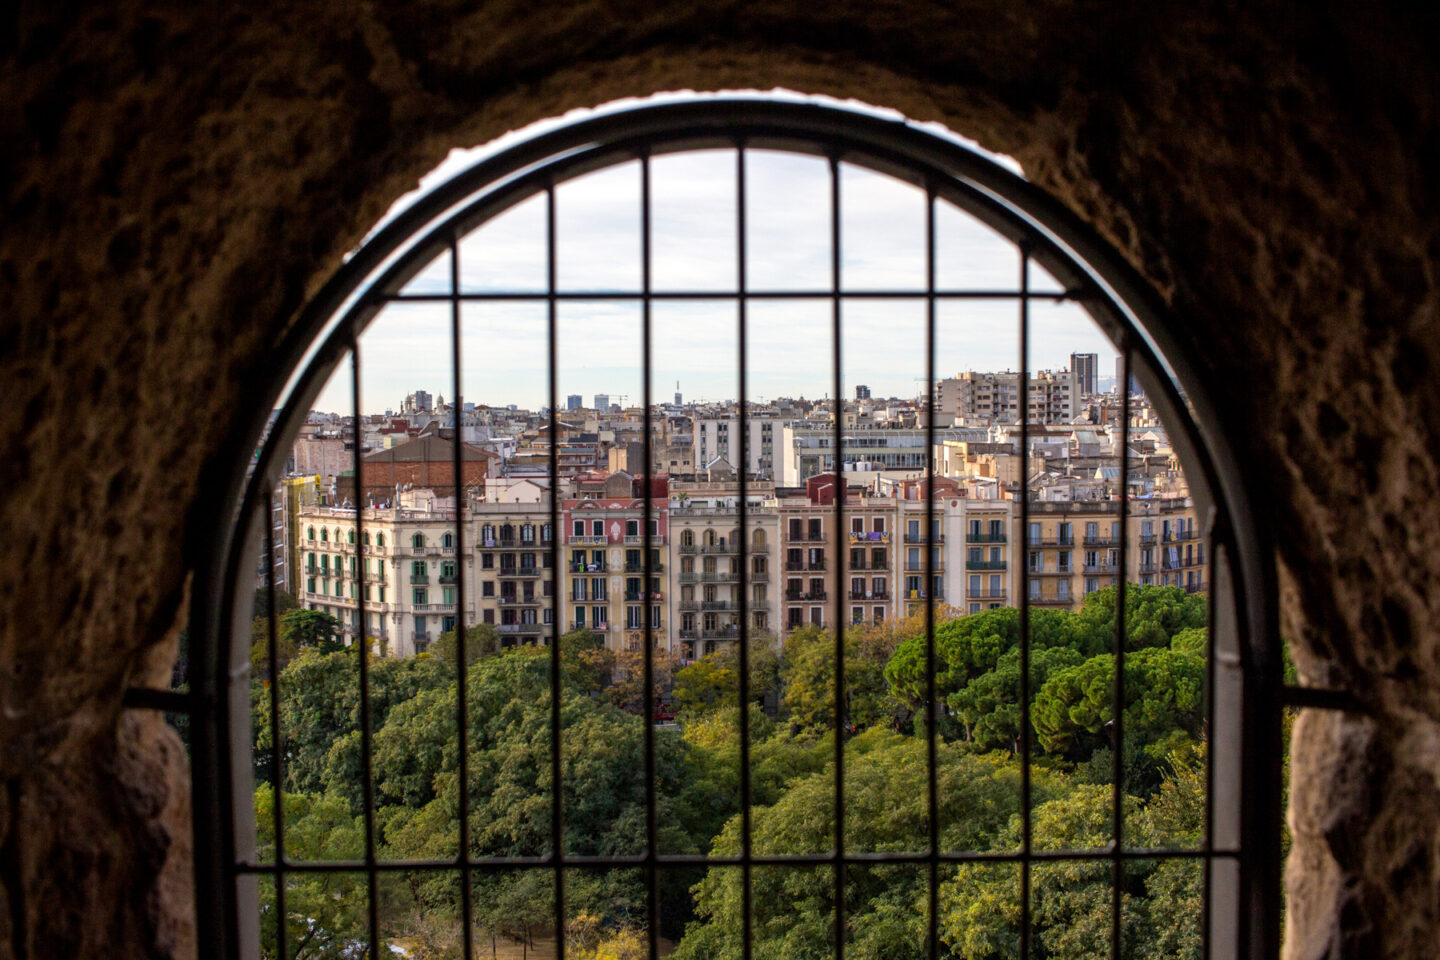 Barcelona pictured through a gated window.